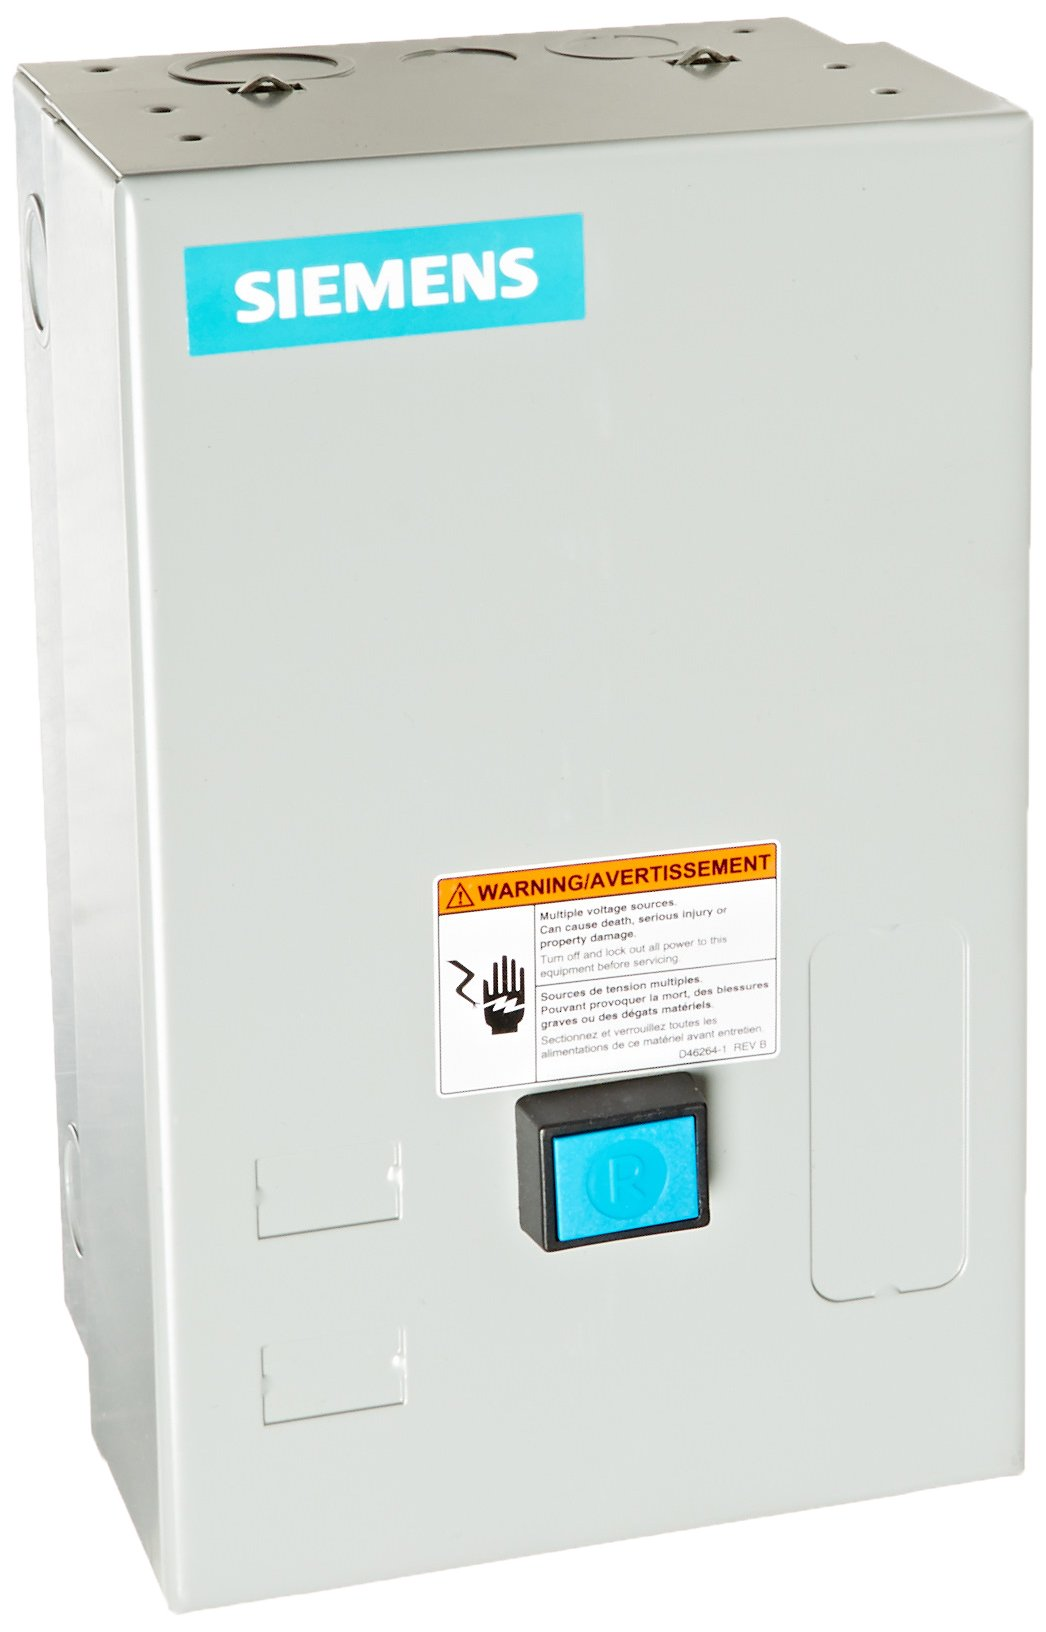 Siemens 14CUC32BC Heavy Duty Motor Starter, Solid State Overload, Auto/Manual Reset, Open Type, NEMA 1 General Purpose Enclosure, 3 Phase, 3 Pole, 0 NEMA Size, 3-12A Amp Range, A1 Frame Size, 220-240/440-480 at 60Hz Coil Voltage